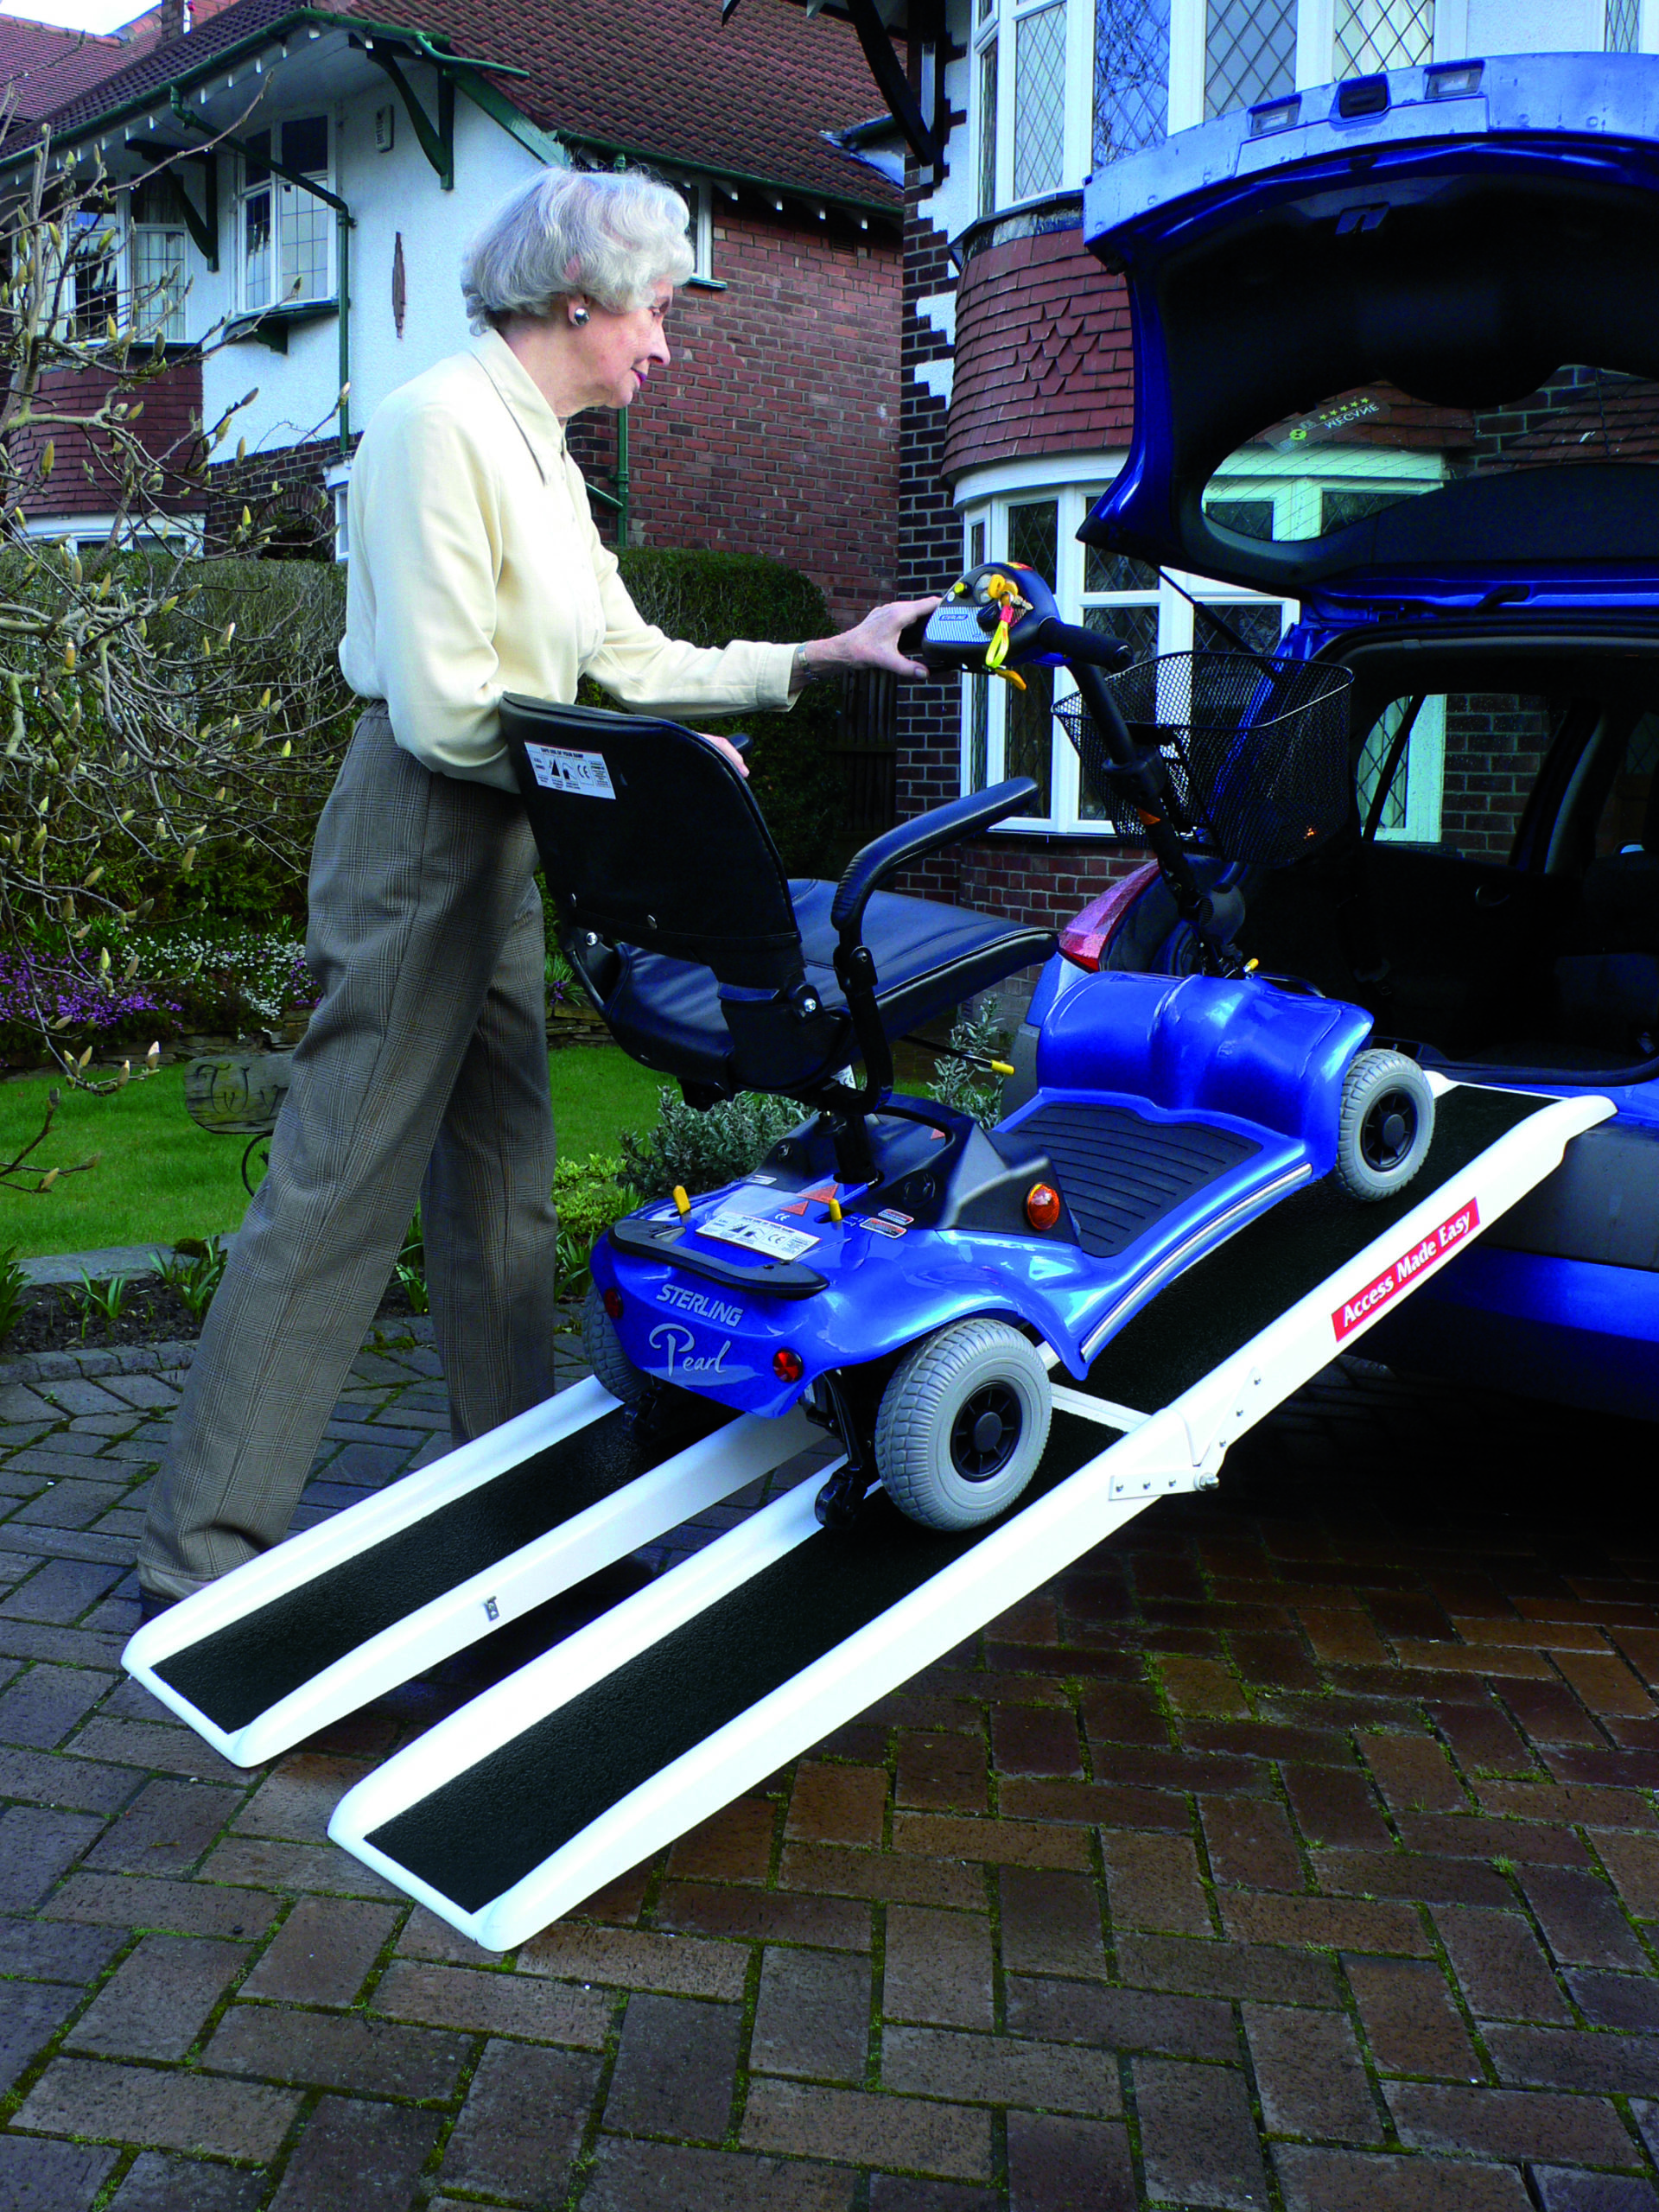 Channel ramp jetmarine ramps to easily charge your electric scooter in the car boot